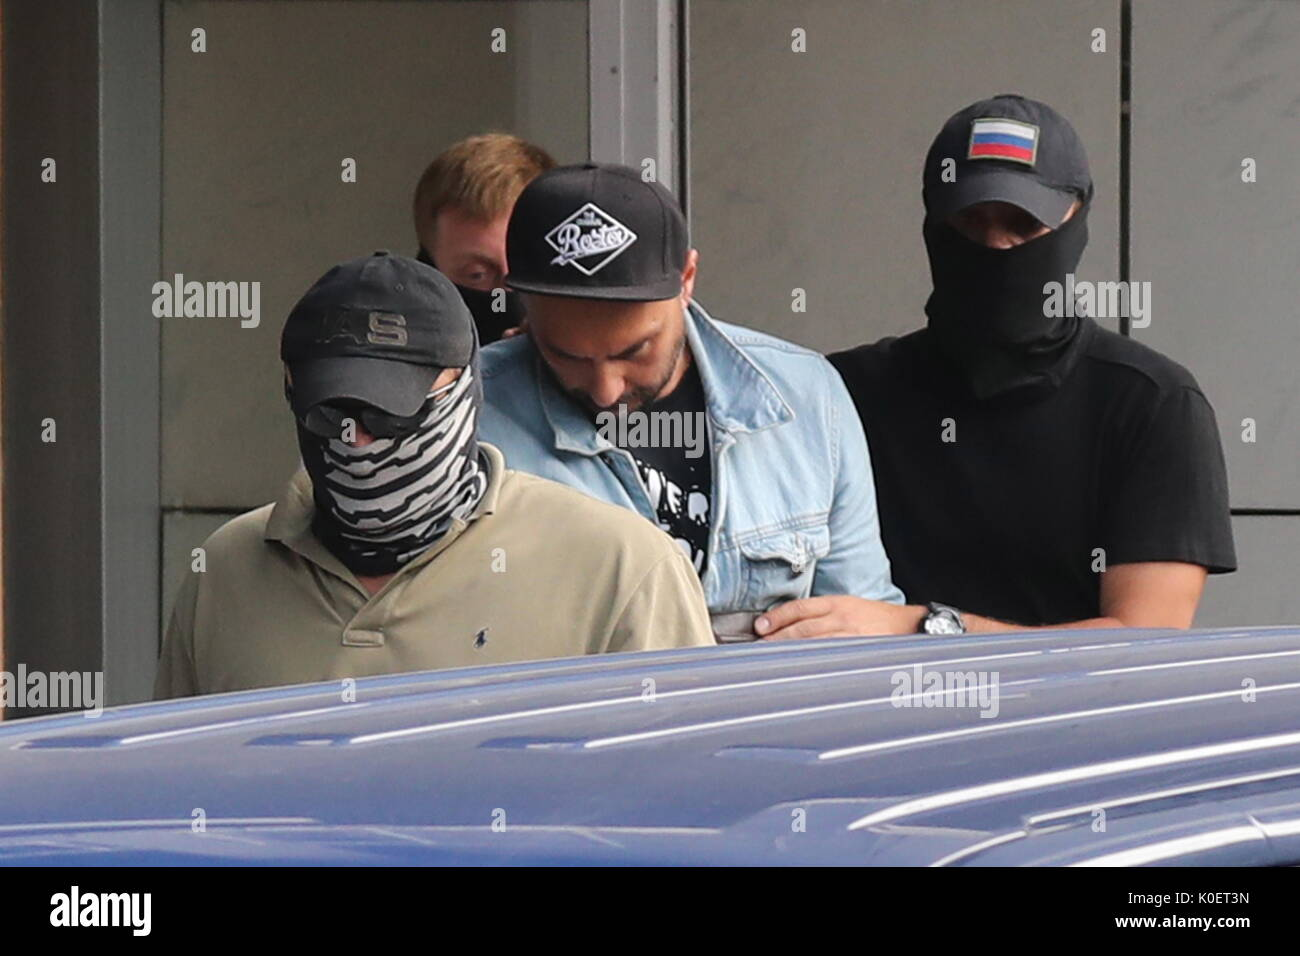 Moscow, Russia. 22nd Aug, 2017. Theatre and film director Kirill Serebrennikov (C) leaves the Russian Investigative Committee building. On August 22, 2017, Serebrennikov was detained on fraud charges. He is accused of embezzling 68 million roubles ($1.1 million) of state funding allocated for the Platforma theatre project between 2011 and 2014. Credit: Vyacheslav Prokofyev/TASS/Alamy Live News - Stock Image